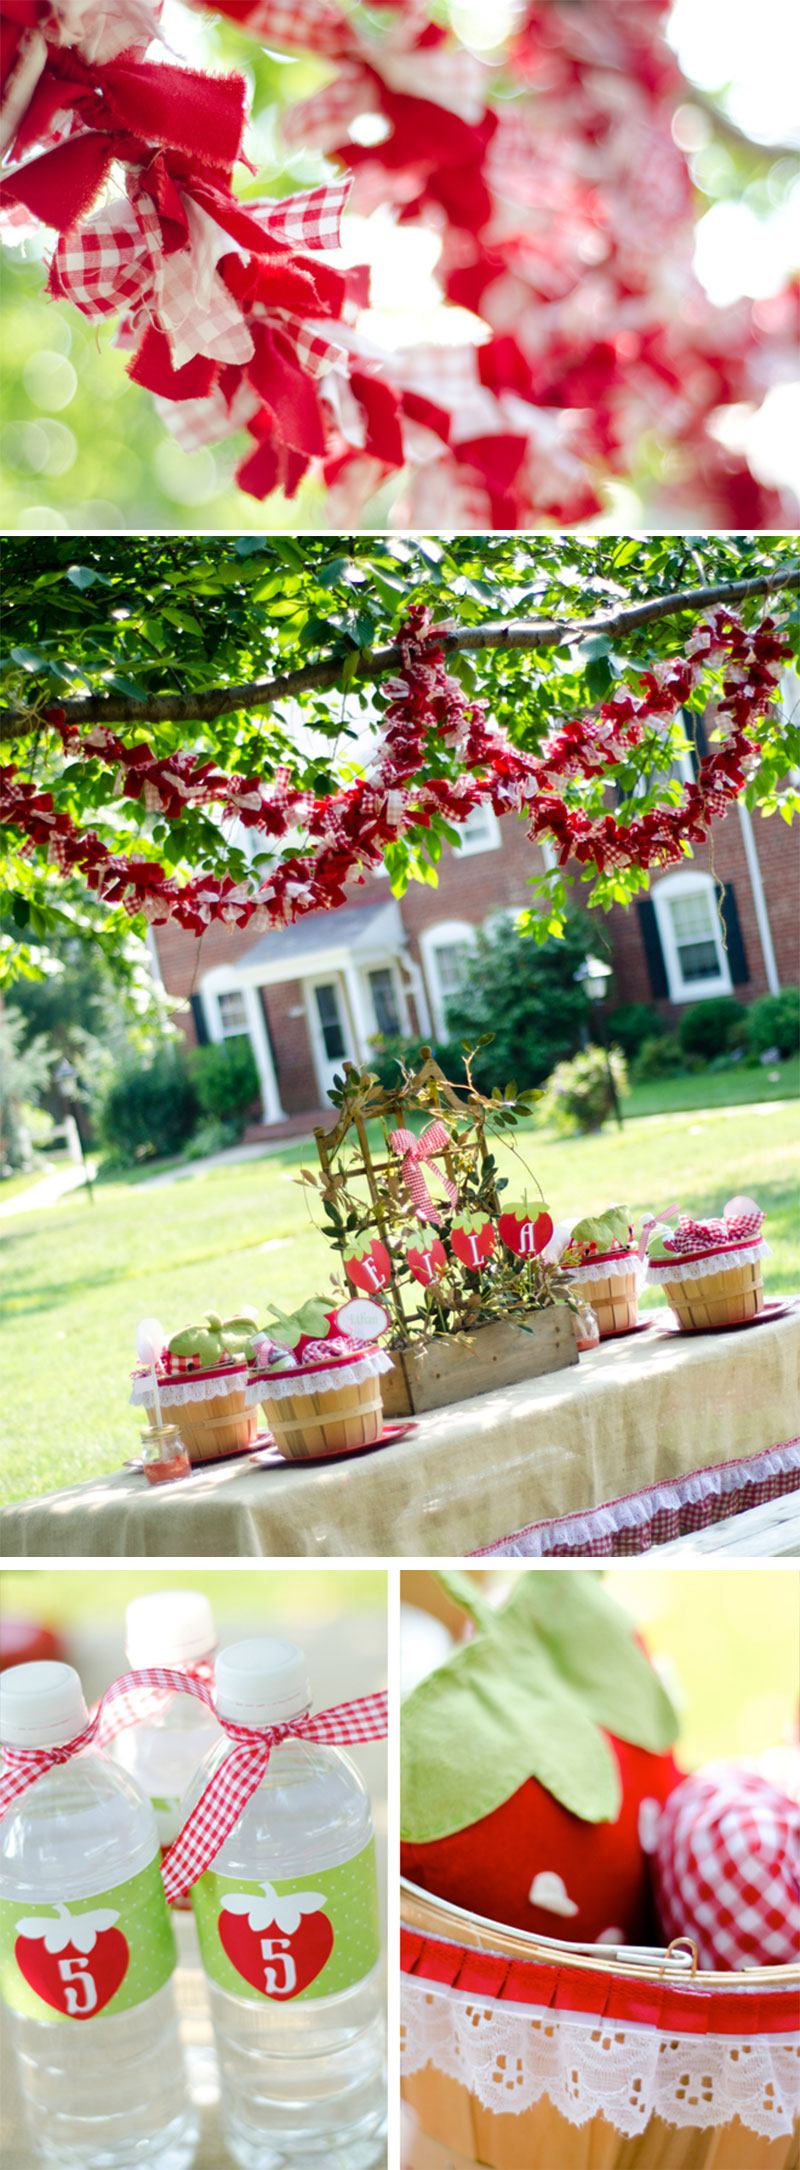 Strawberry Party Ideas by Lindi Haws of Love The Day